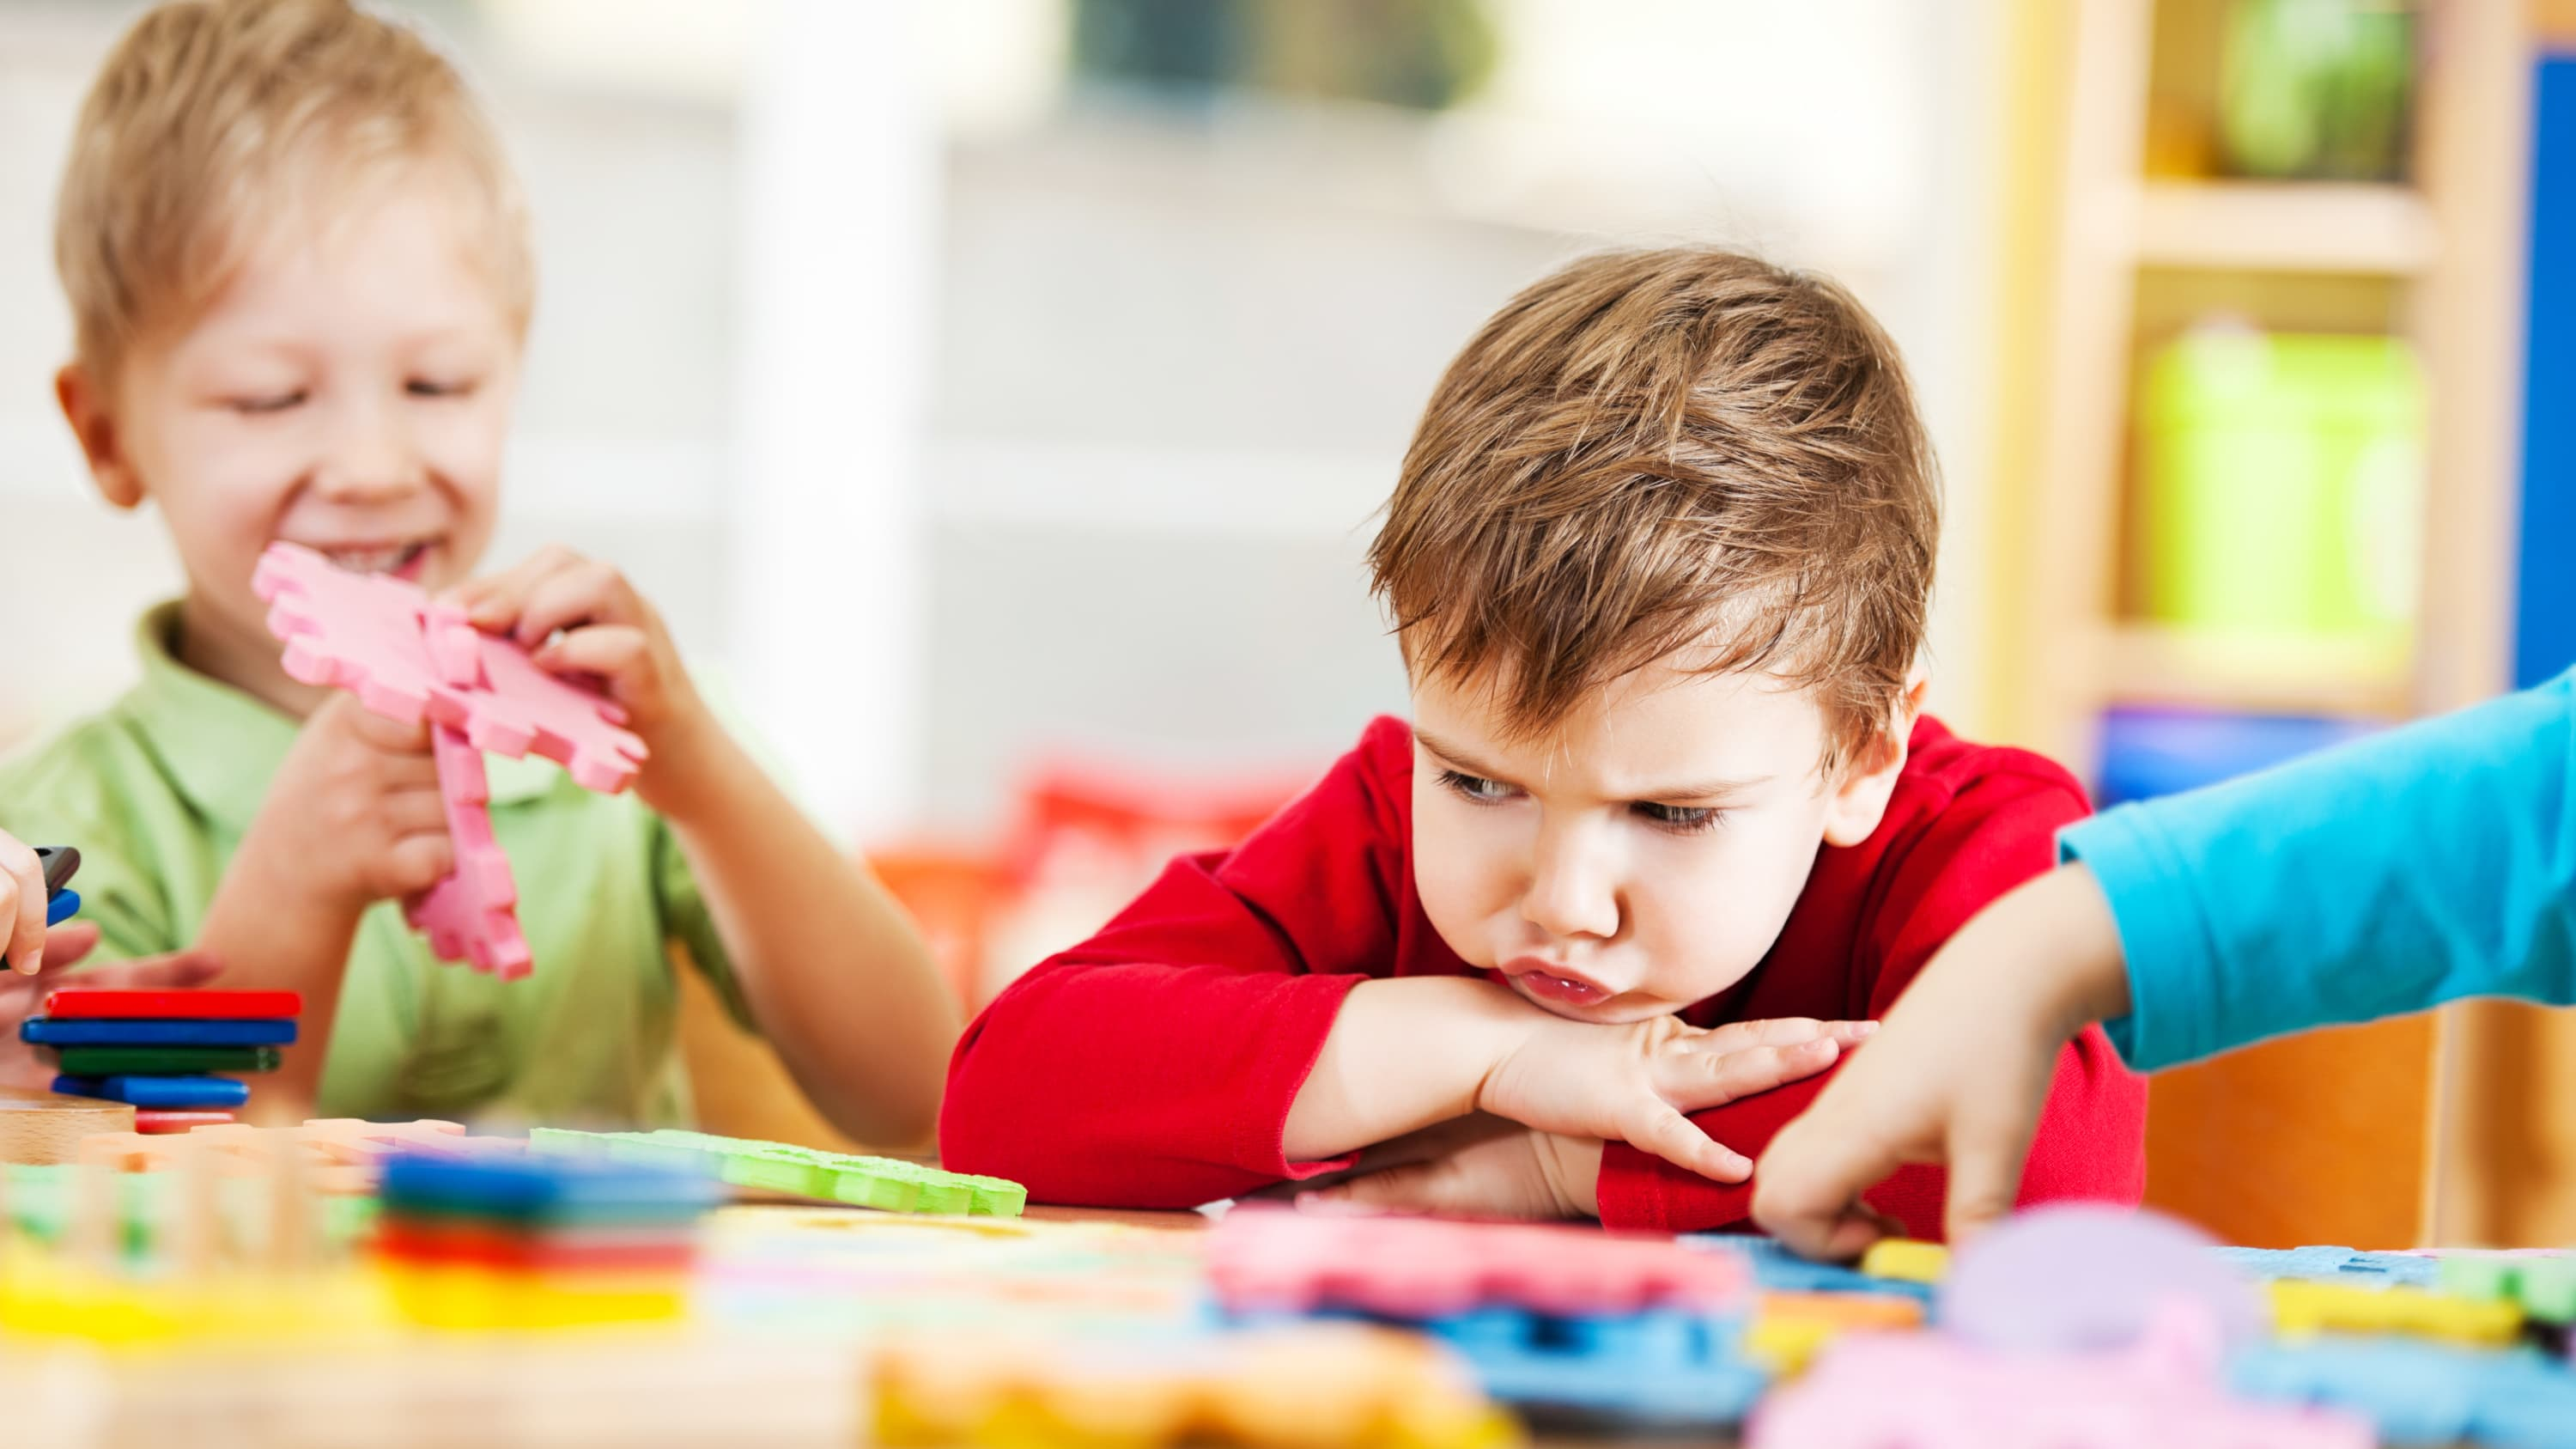 One small boy sulks while another plays in a setting where autism is treated with pivotal response syndrome.